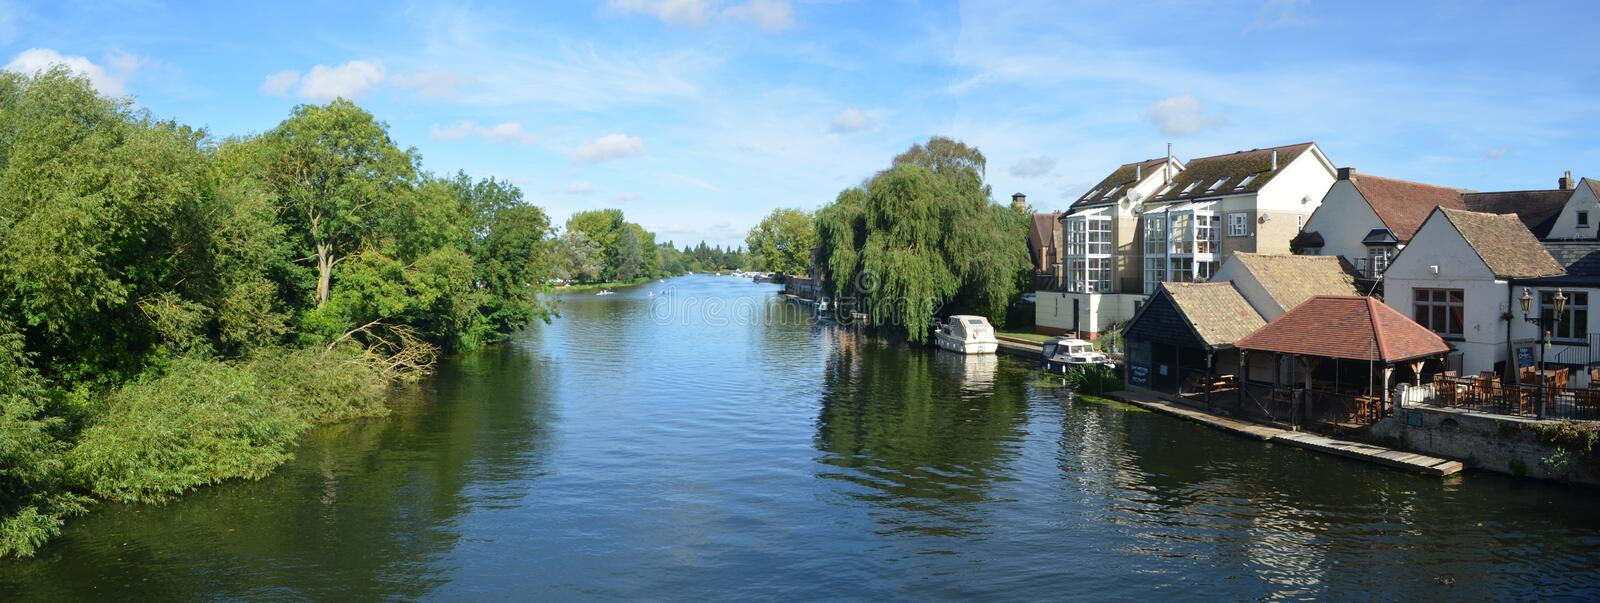 The river Ouse, Regatta meadows and riverside buildings at St Neots Cambridgeshire England. royalty free stock image